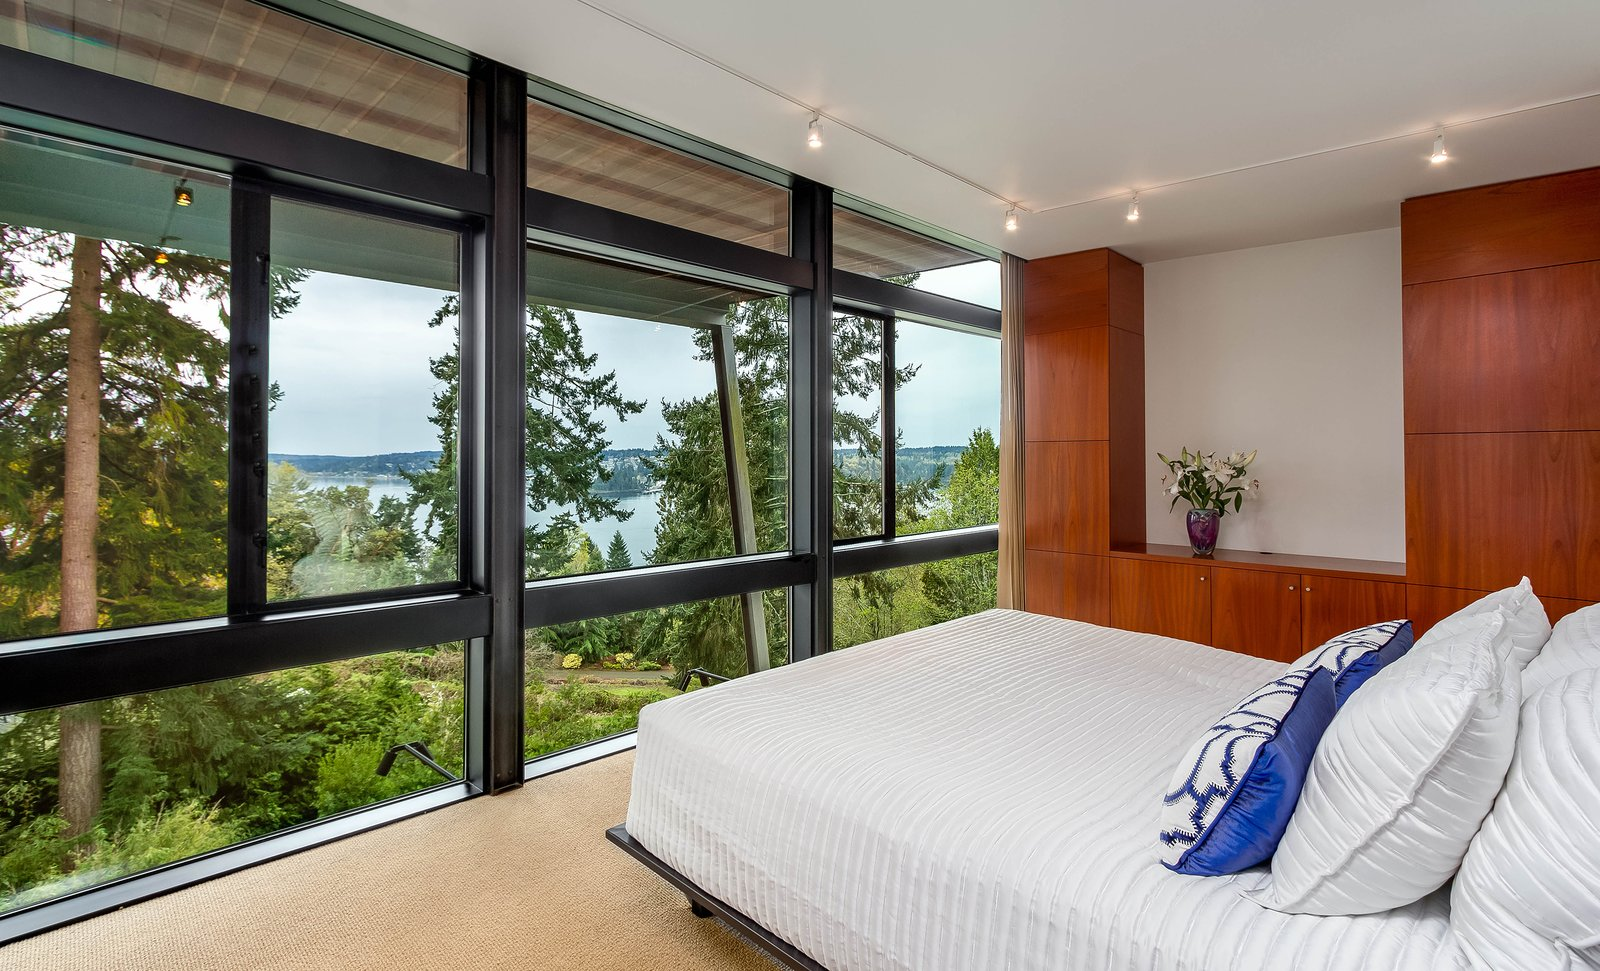 Bedroom The master bedroom features amazing views and built-in storage.  Photo 6 of 8 in A Cantilevered Bainbridge Island Home Set Atop a Historic Bunker Lists For $1.73M from Stunning Steel-Frame Construction Cantilevered atop Historic Bunker For Sale